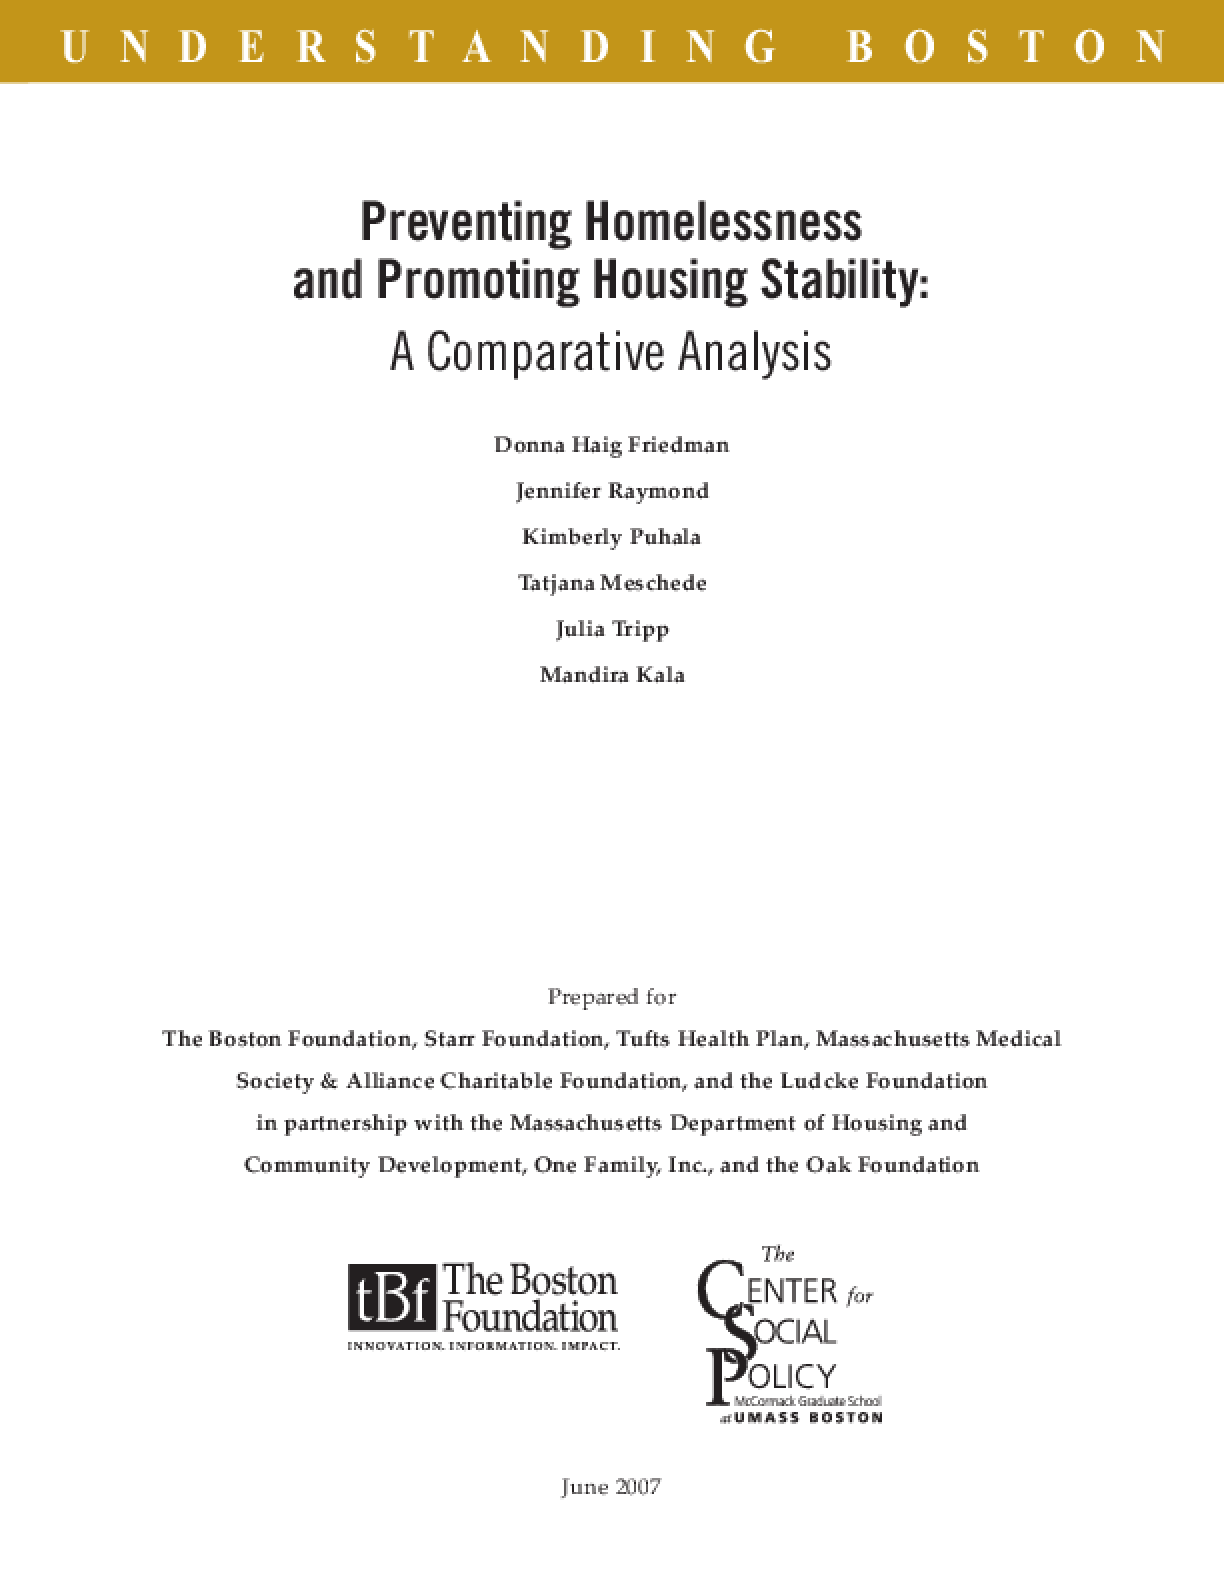 Preventing Homelessness and Promoting Housing Stability: A Comparative Analysis